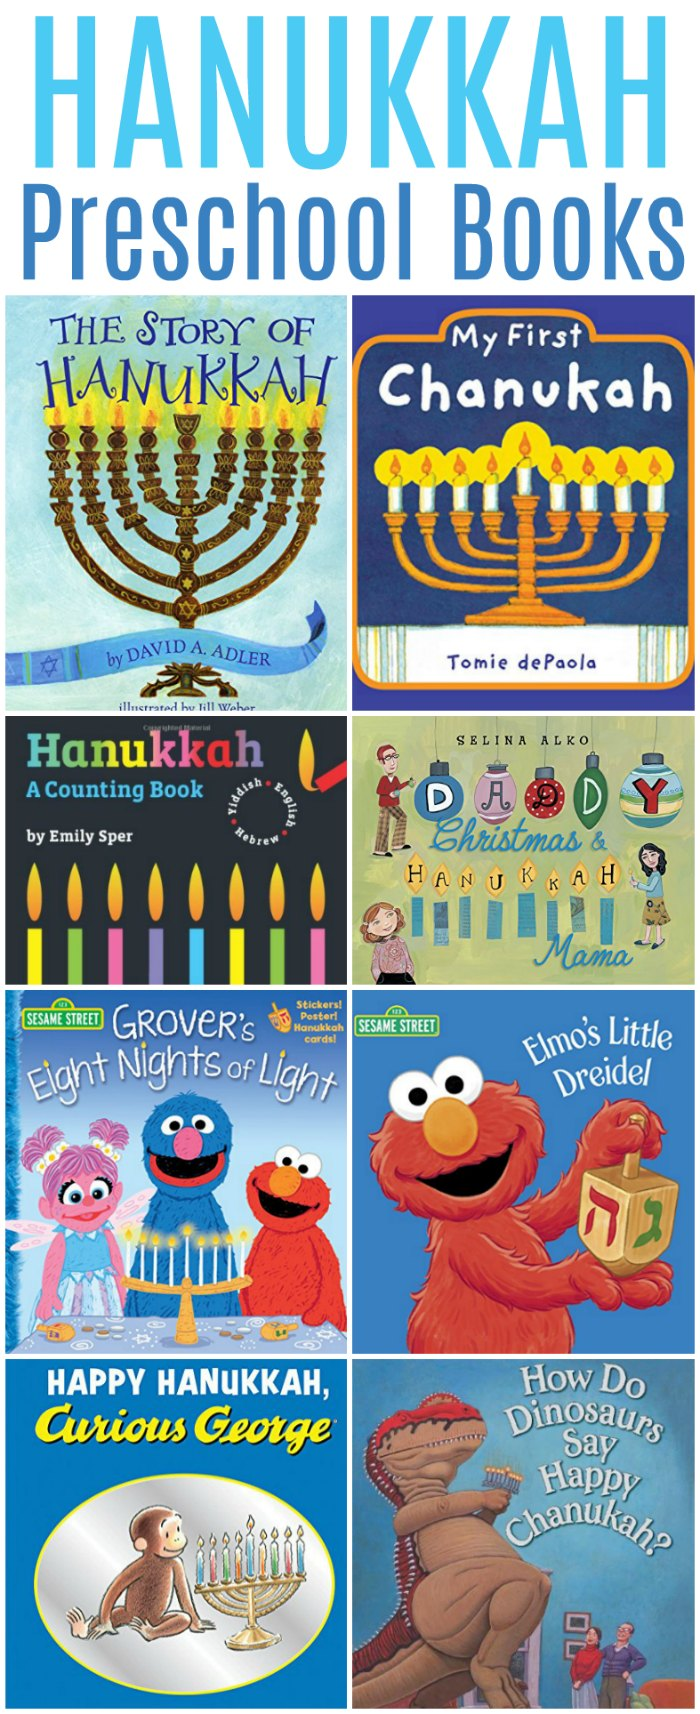 Hanukkah Books for Preschoolers (Childrens Board Books Edition) | Mommy Evolution